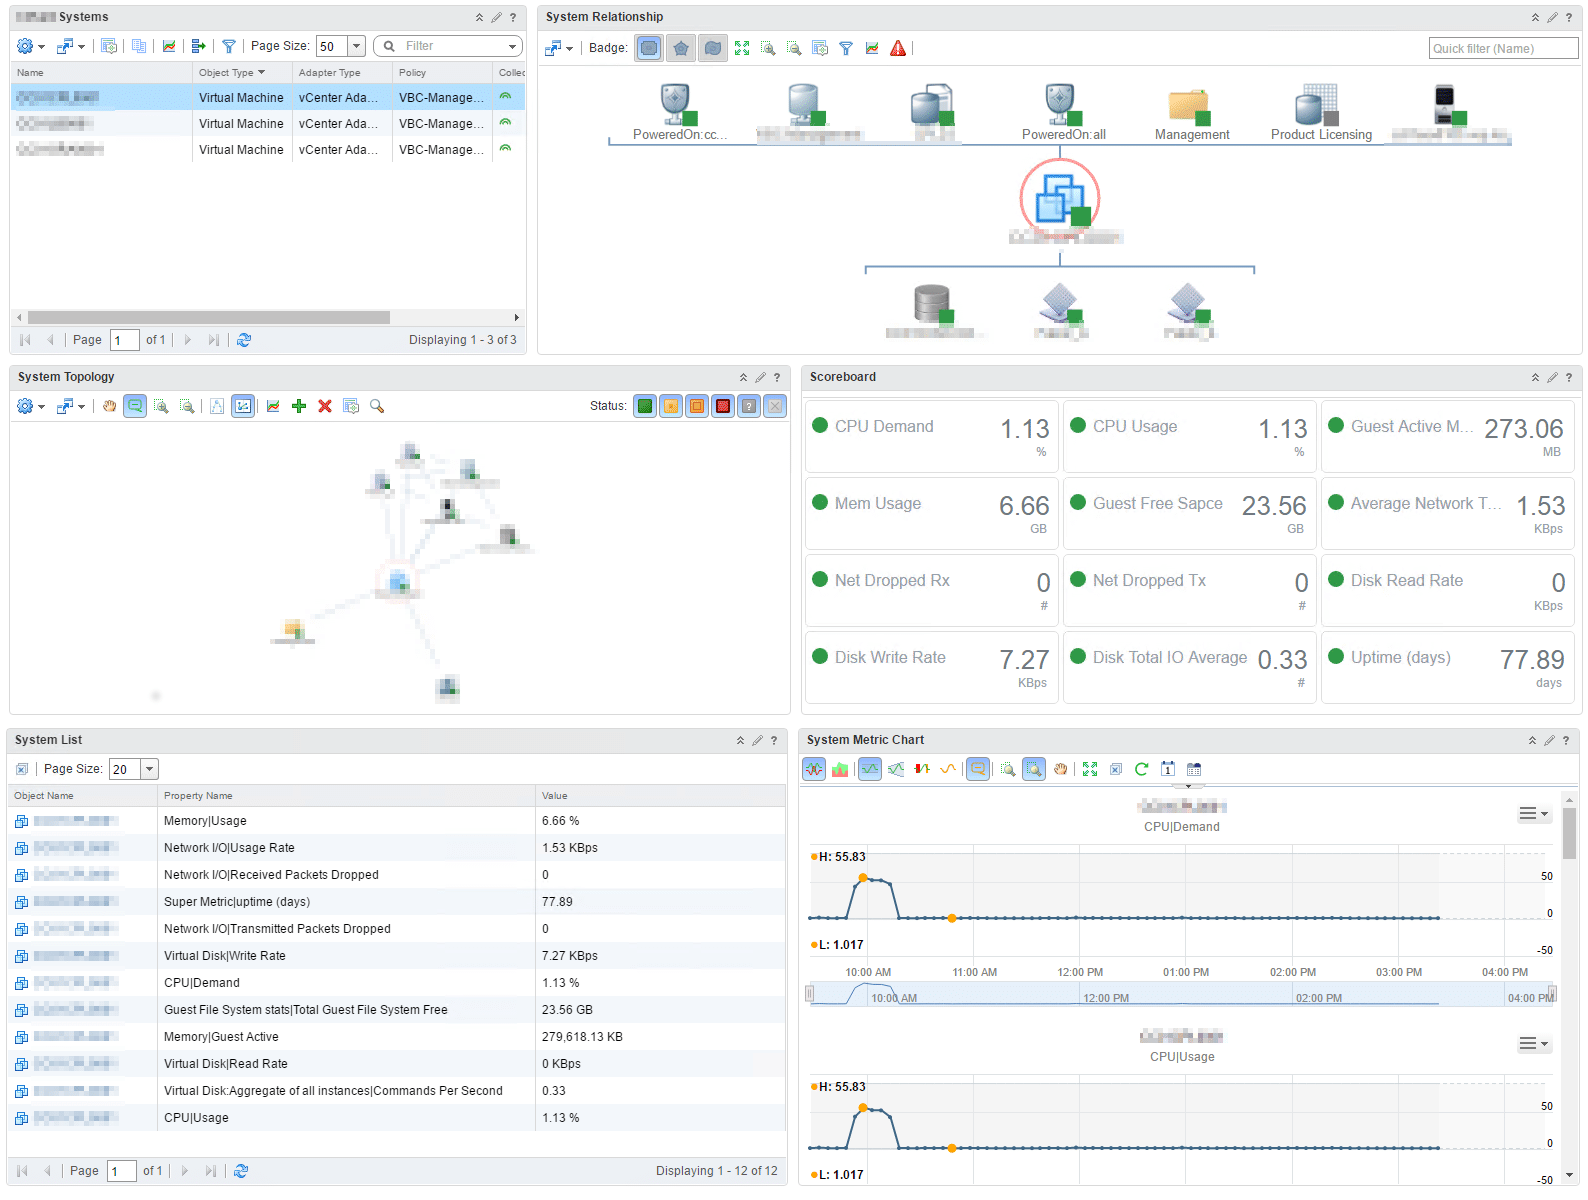 vRealize Operations - Application Dashboard